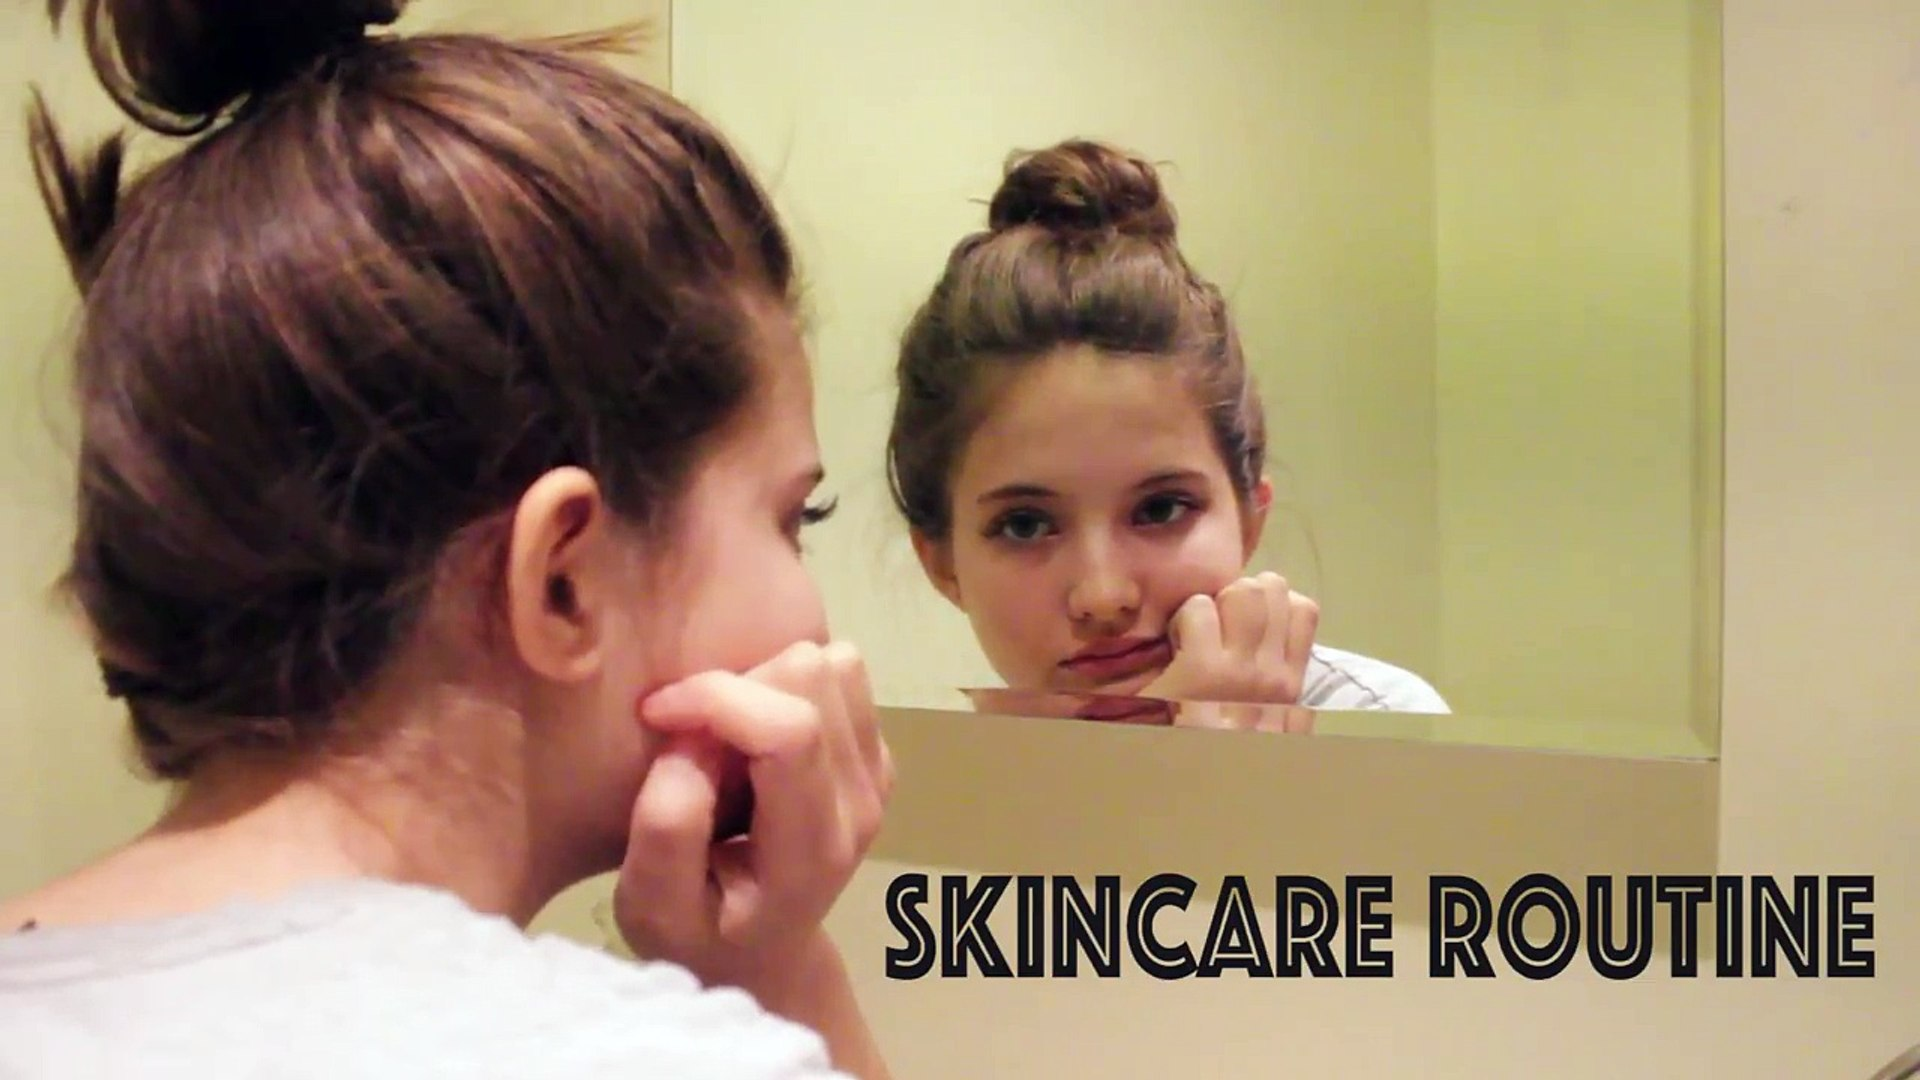 HOW TO GET BOMB SKIN _ SKINCARE ROUTINE 2018